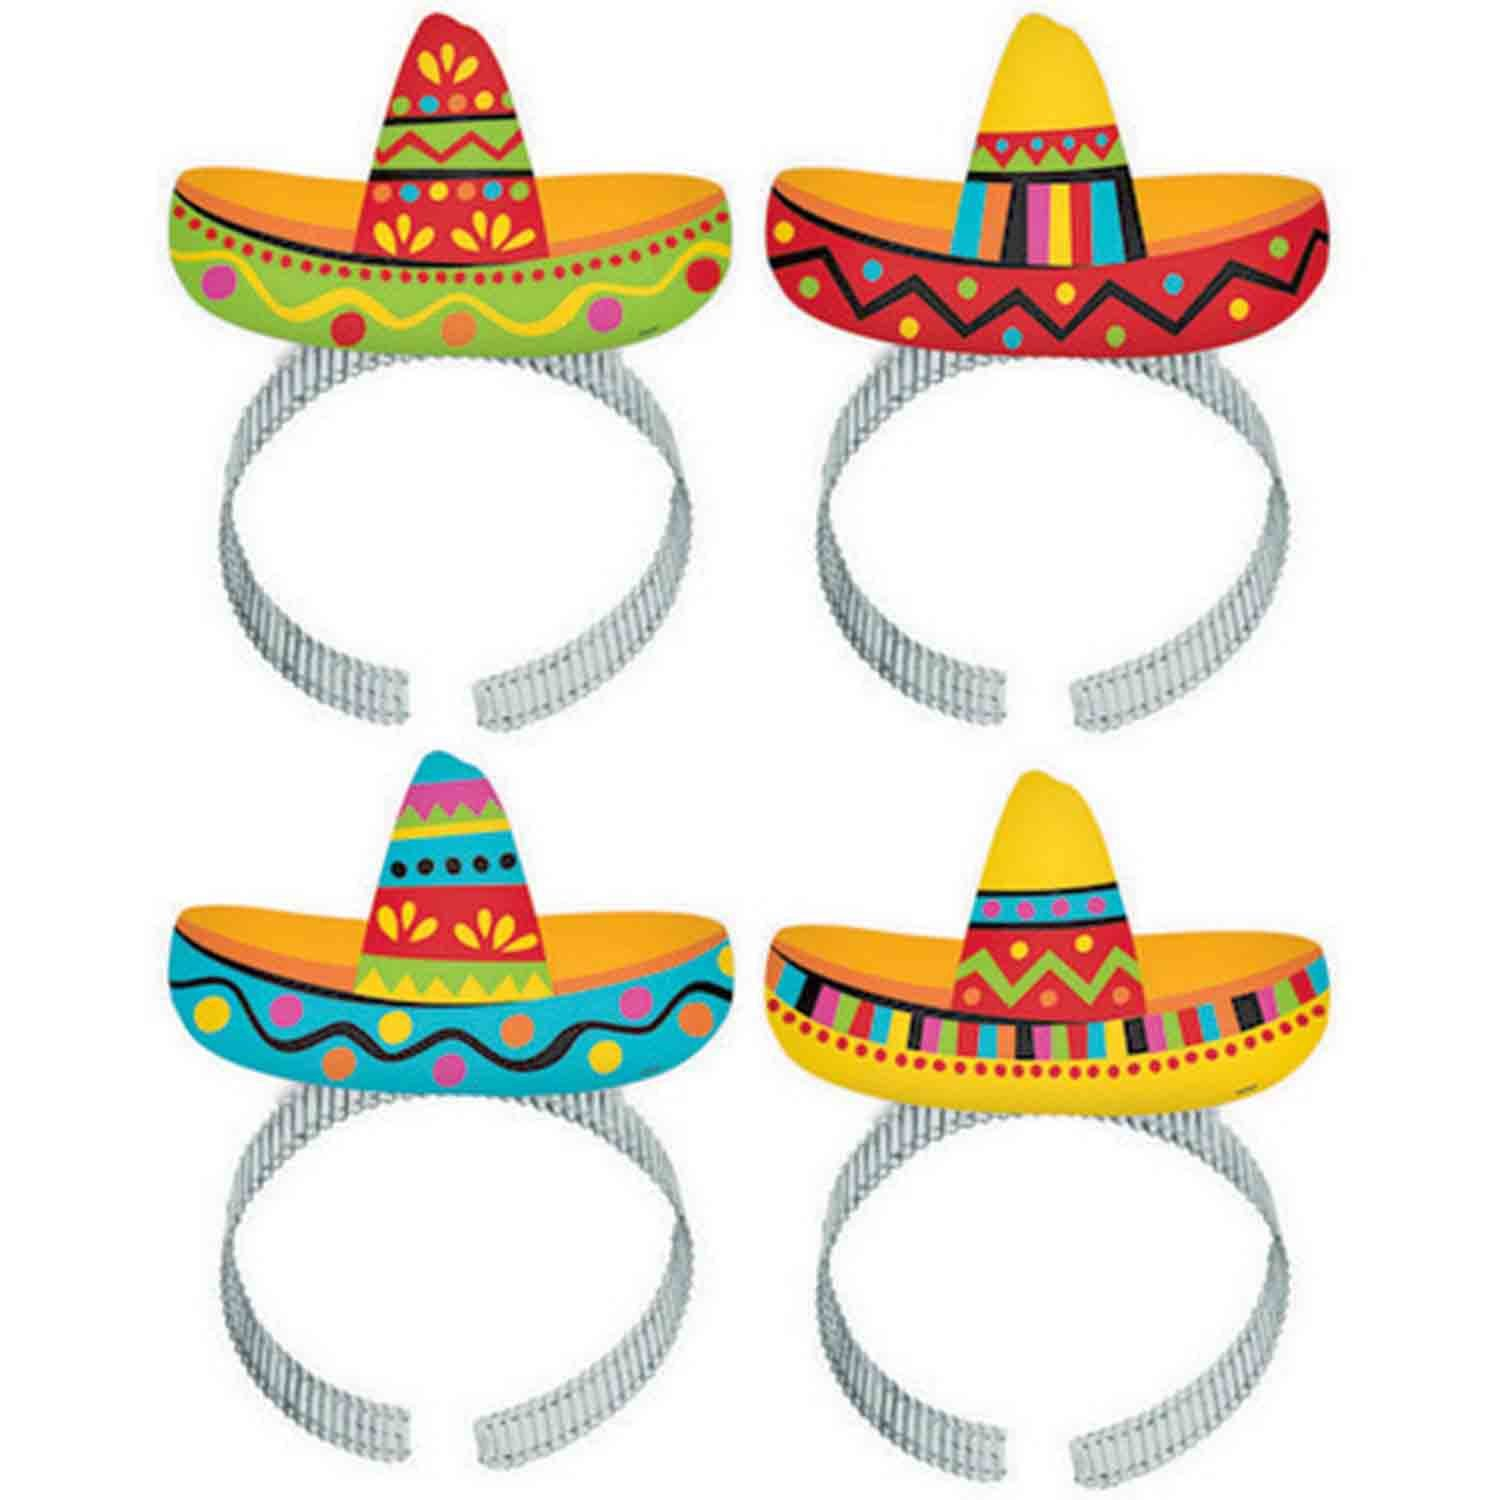 Fiesta Sombrero Headbands